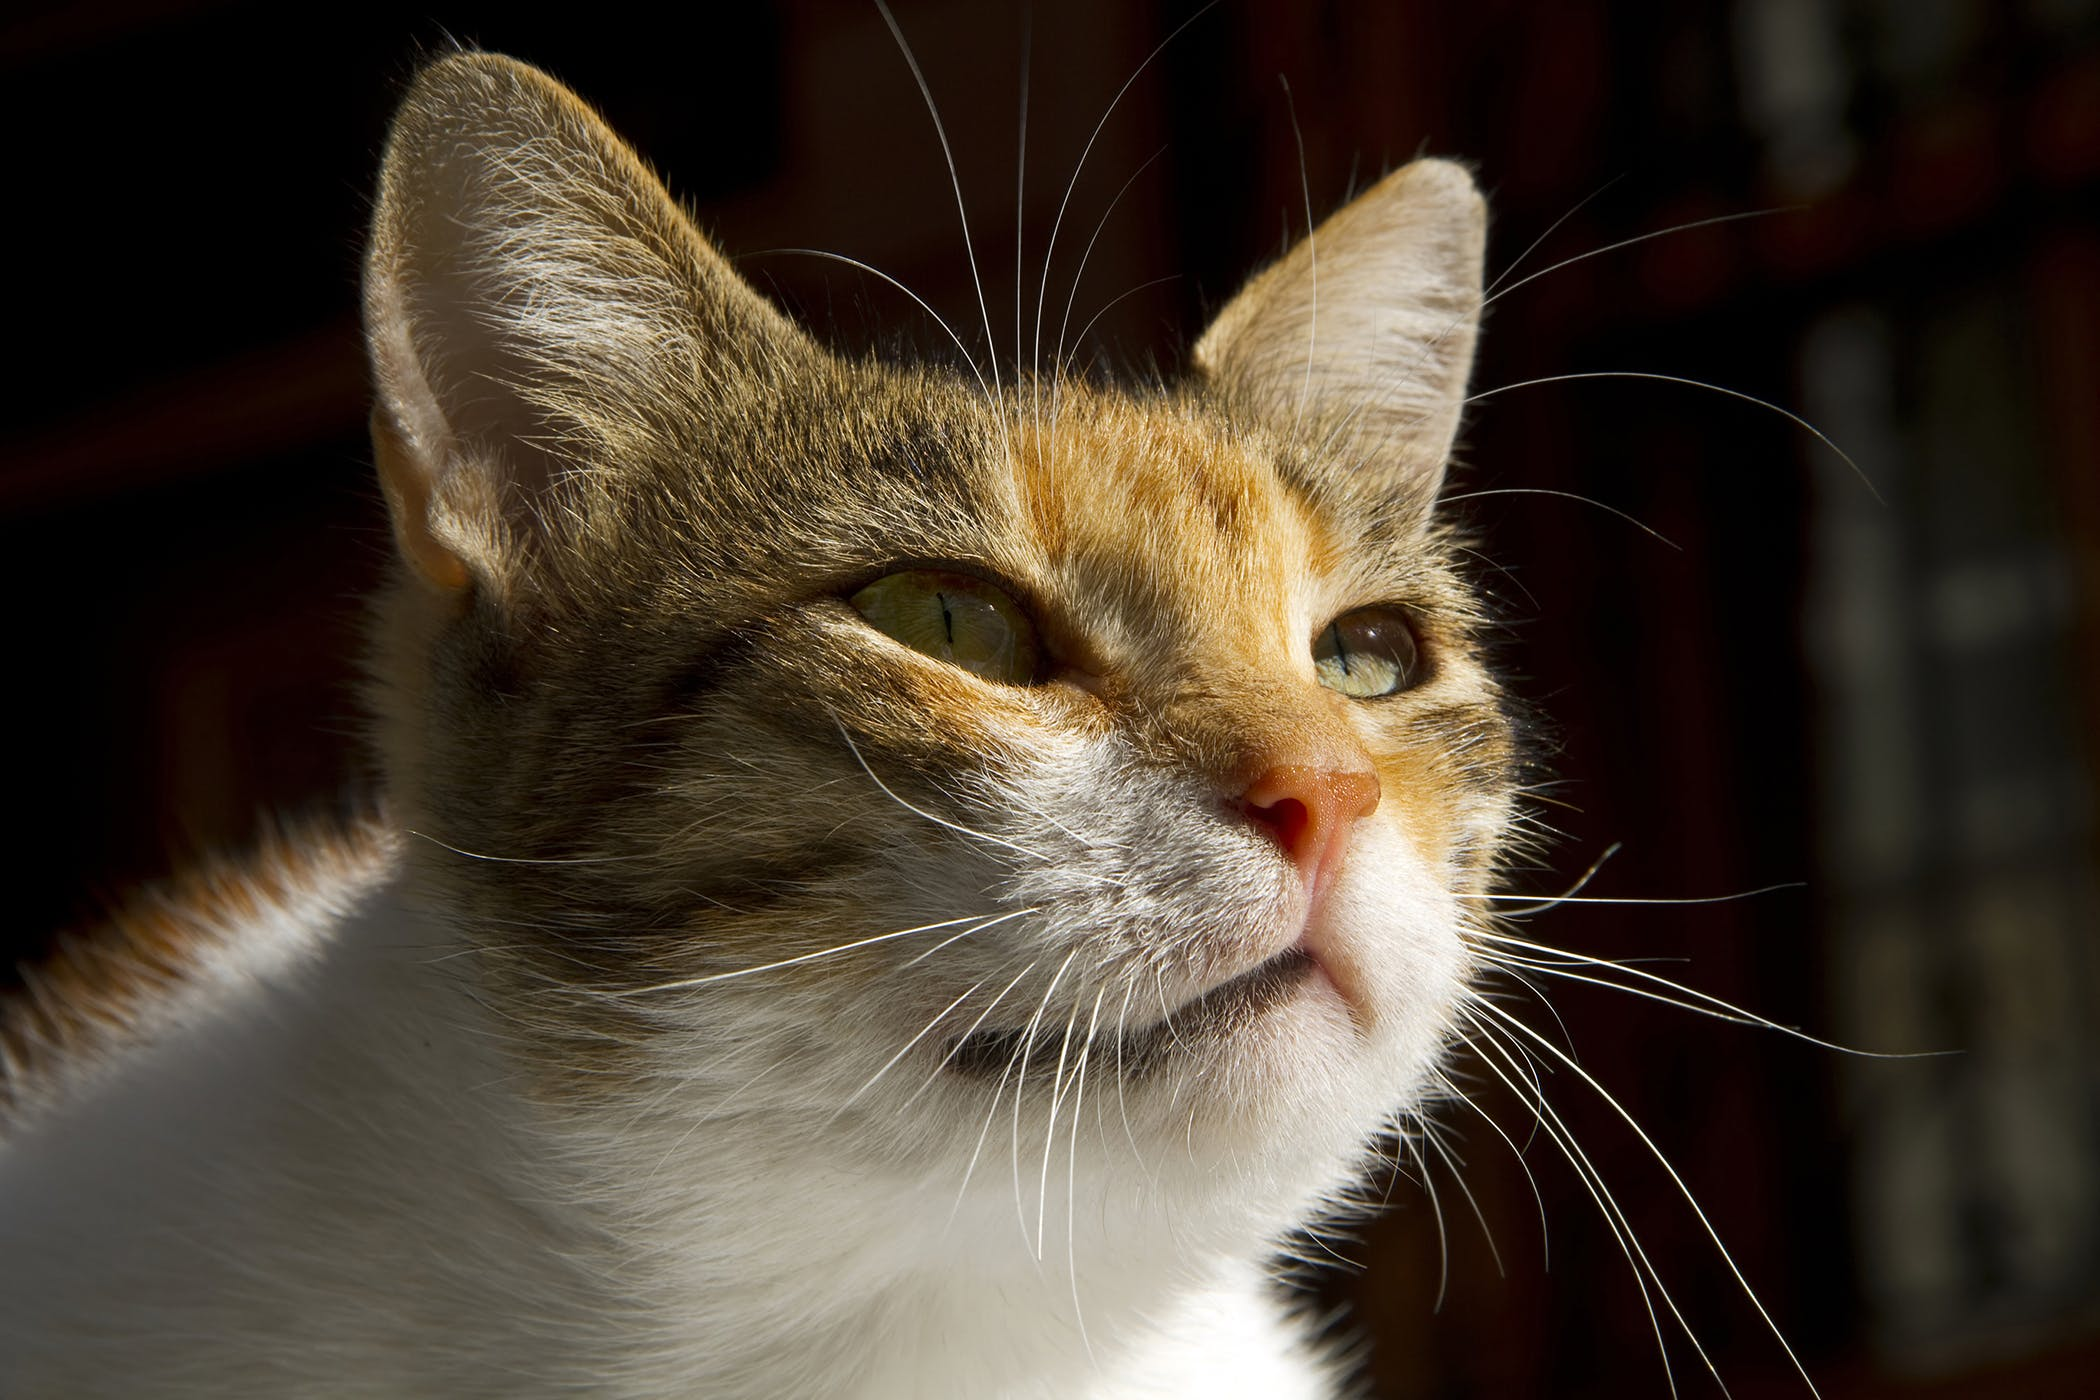 Thyroid Medicine Allergy in Cats